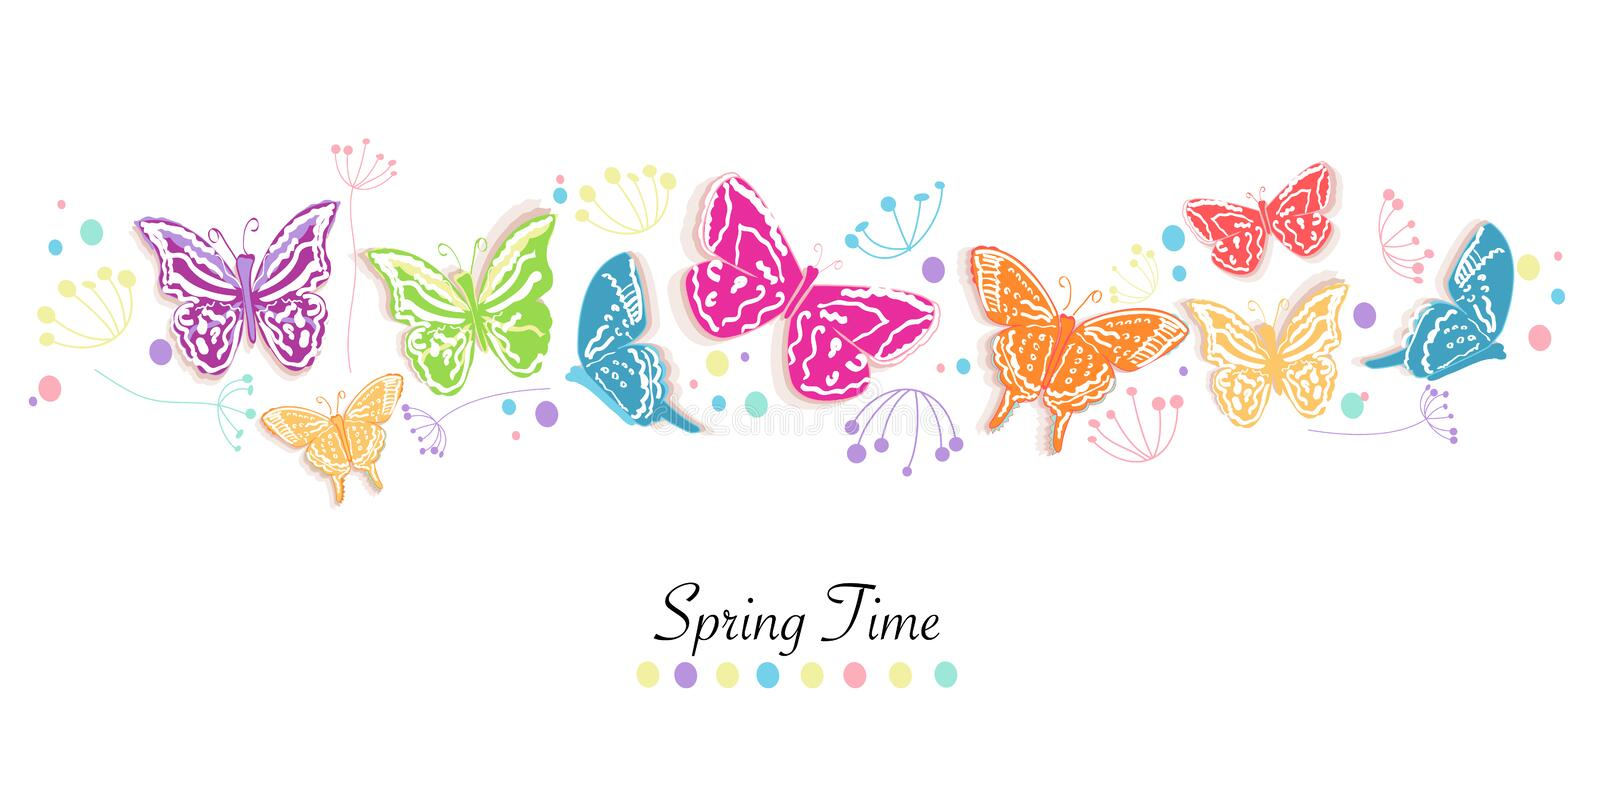 Butterfly and flowers abstract spring time banner vector background royalty free illustration